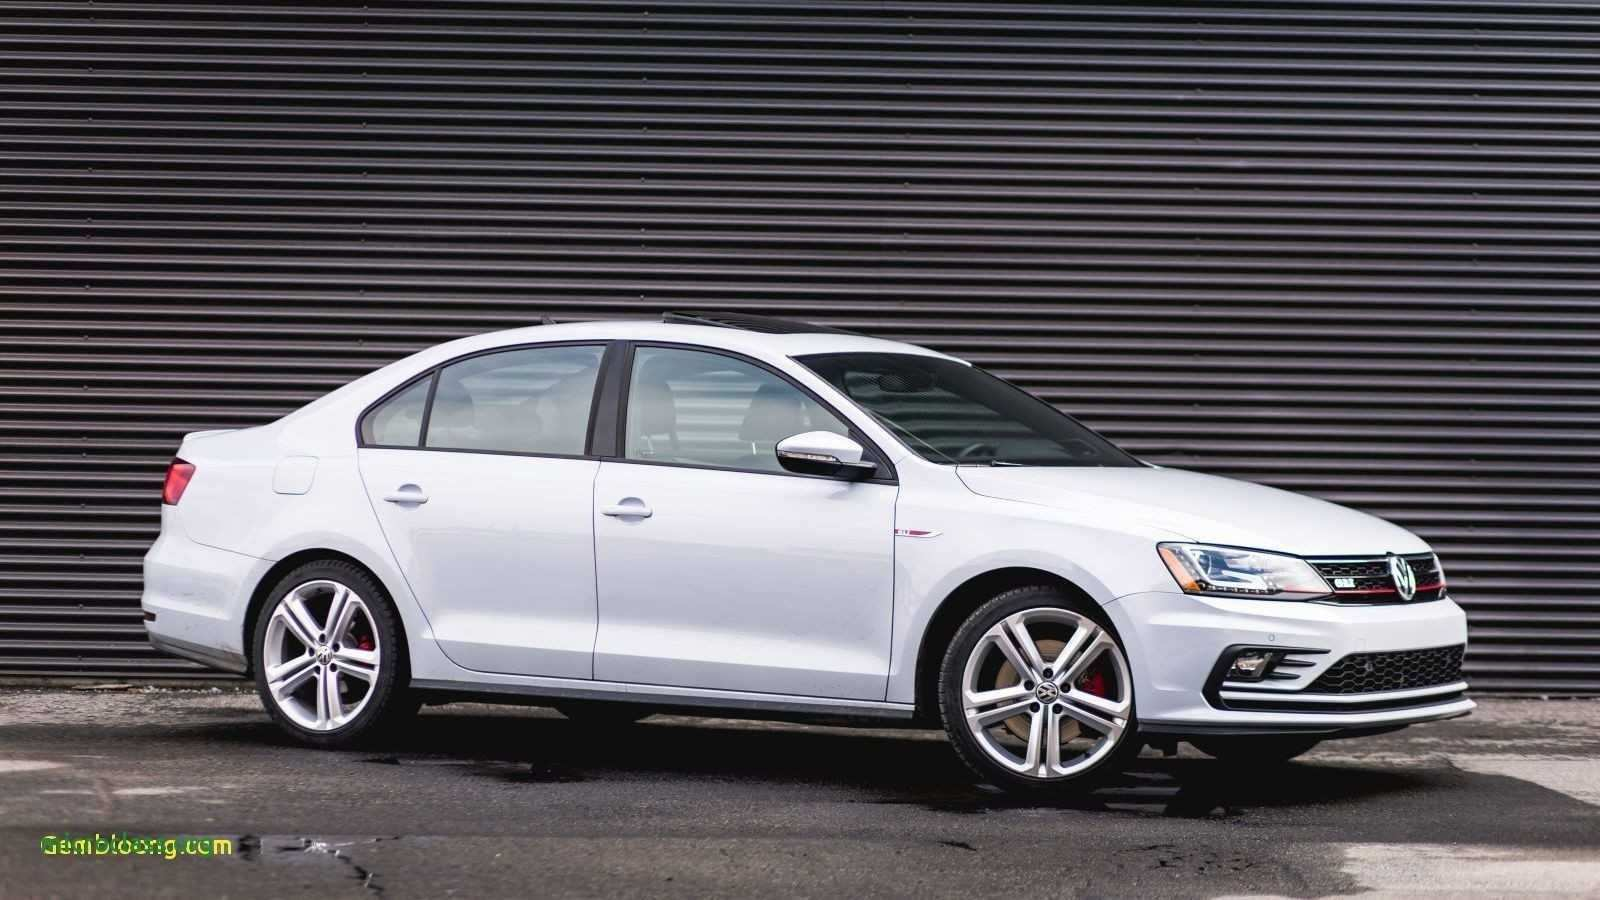 95 A 2019 Vw Jetta Tdi Picture